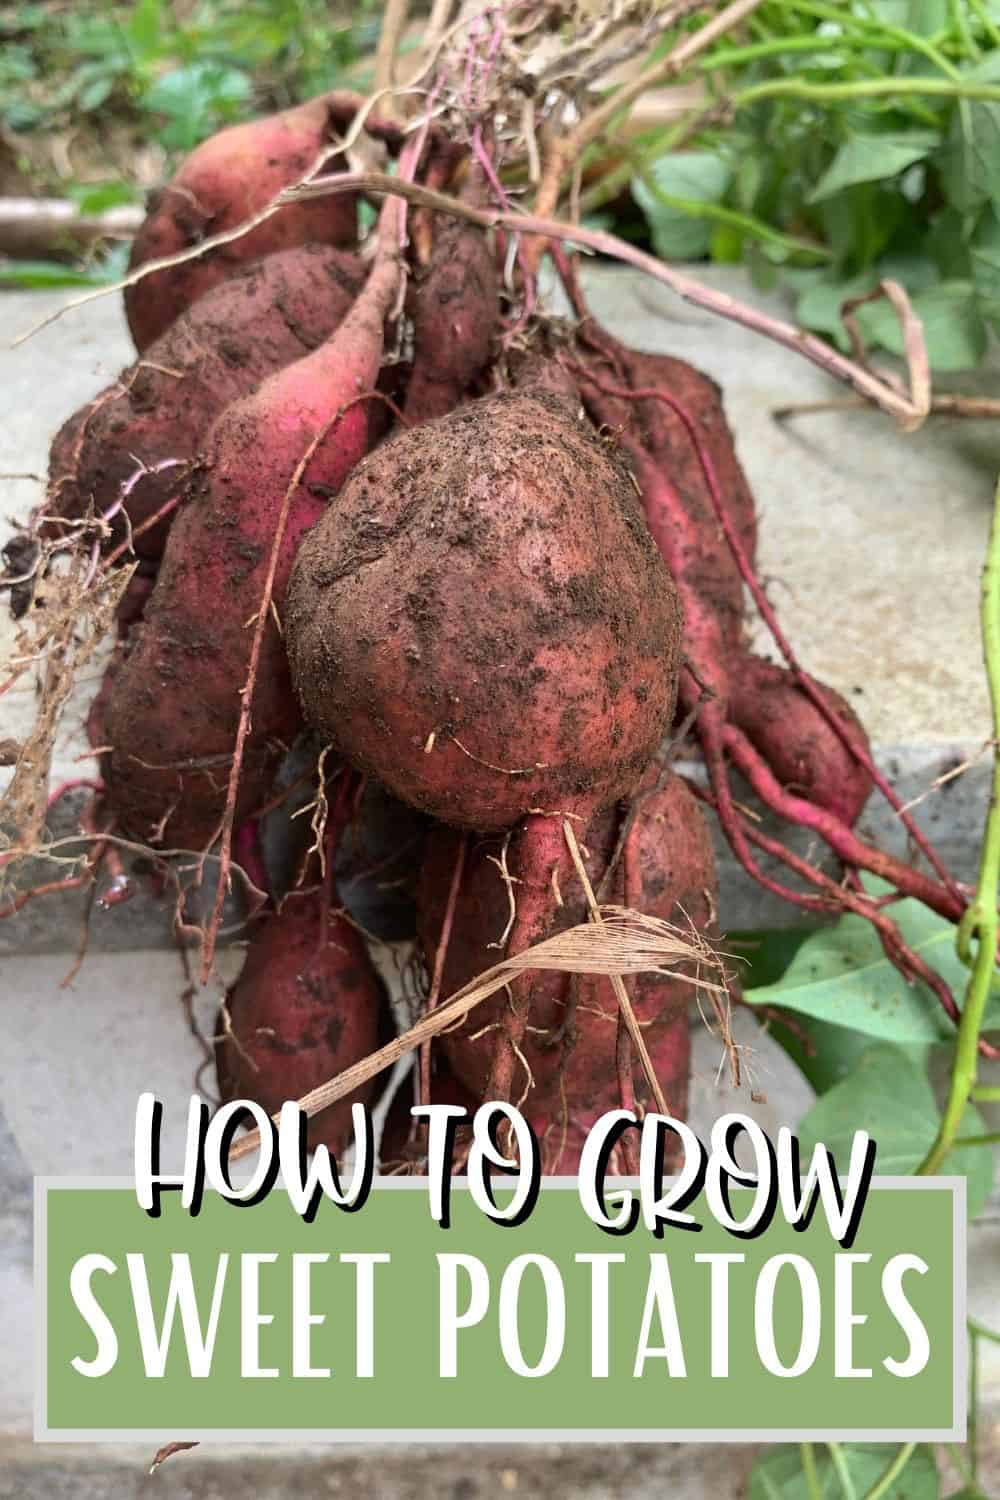 pink sweet potatoes covered in soil